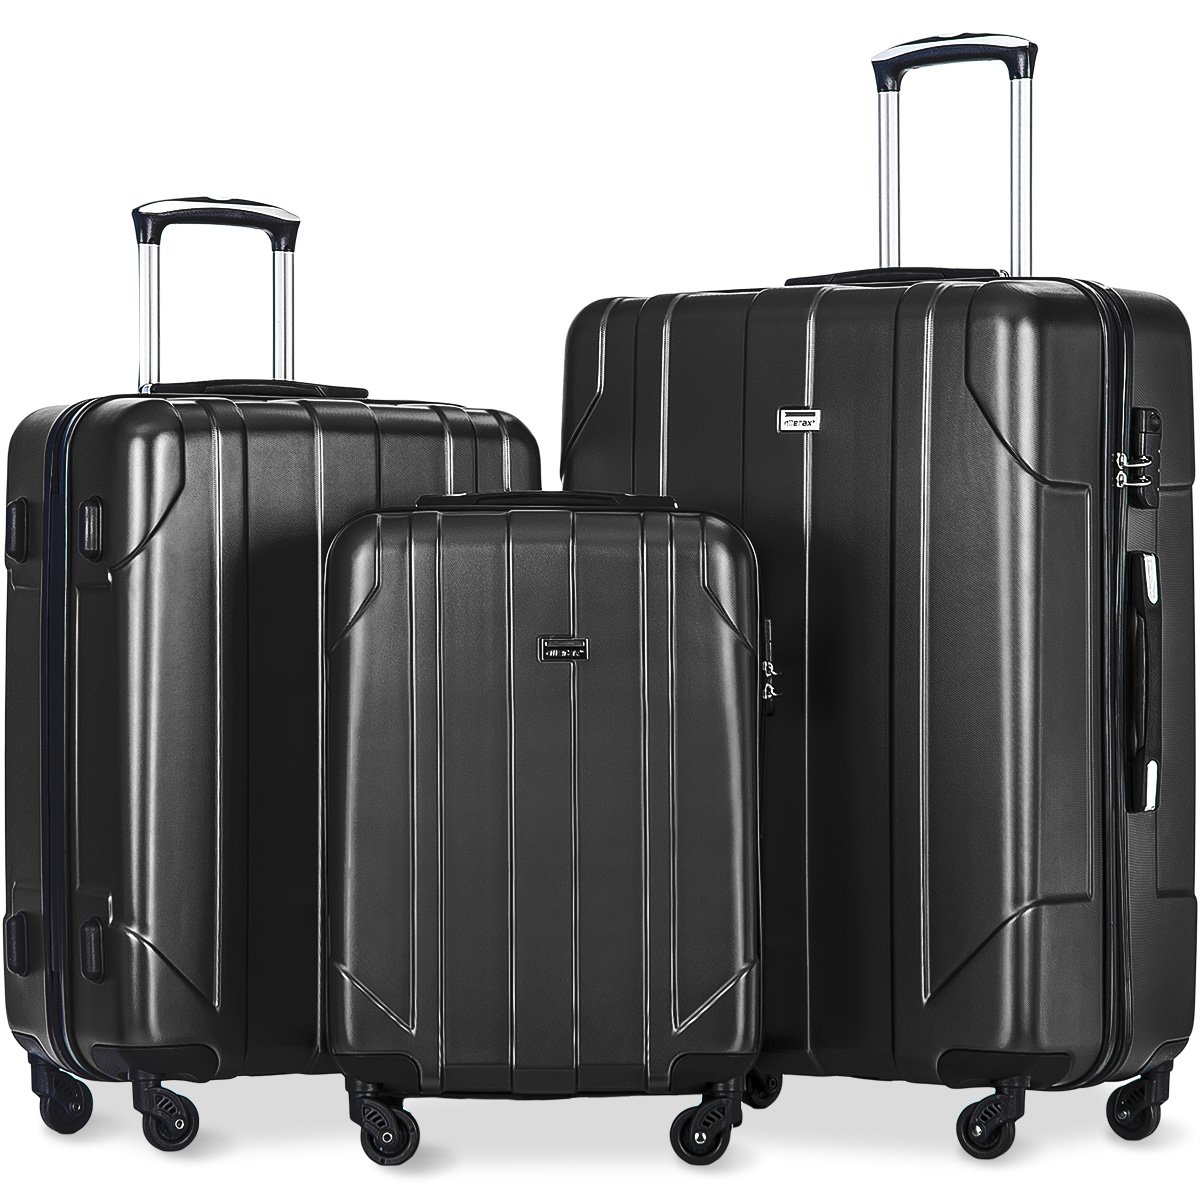 Merax 3 Piece P.E.T Luggage Set Eco-friendly Light Weight Spinner Suitcase by Merax